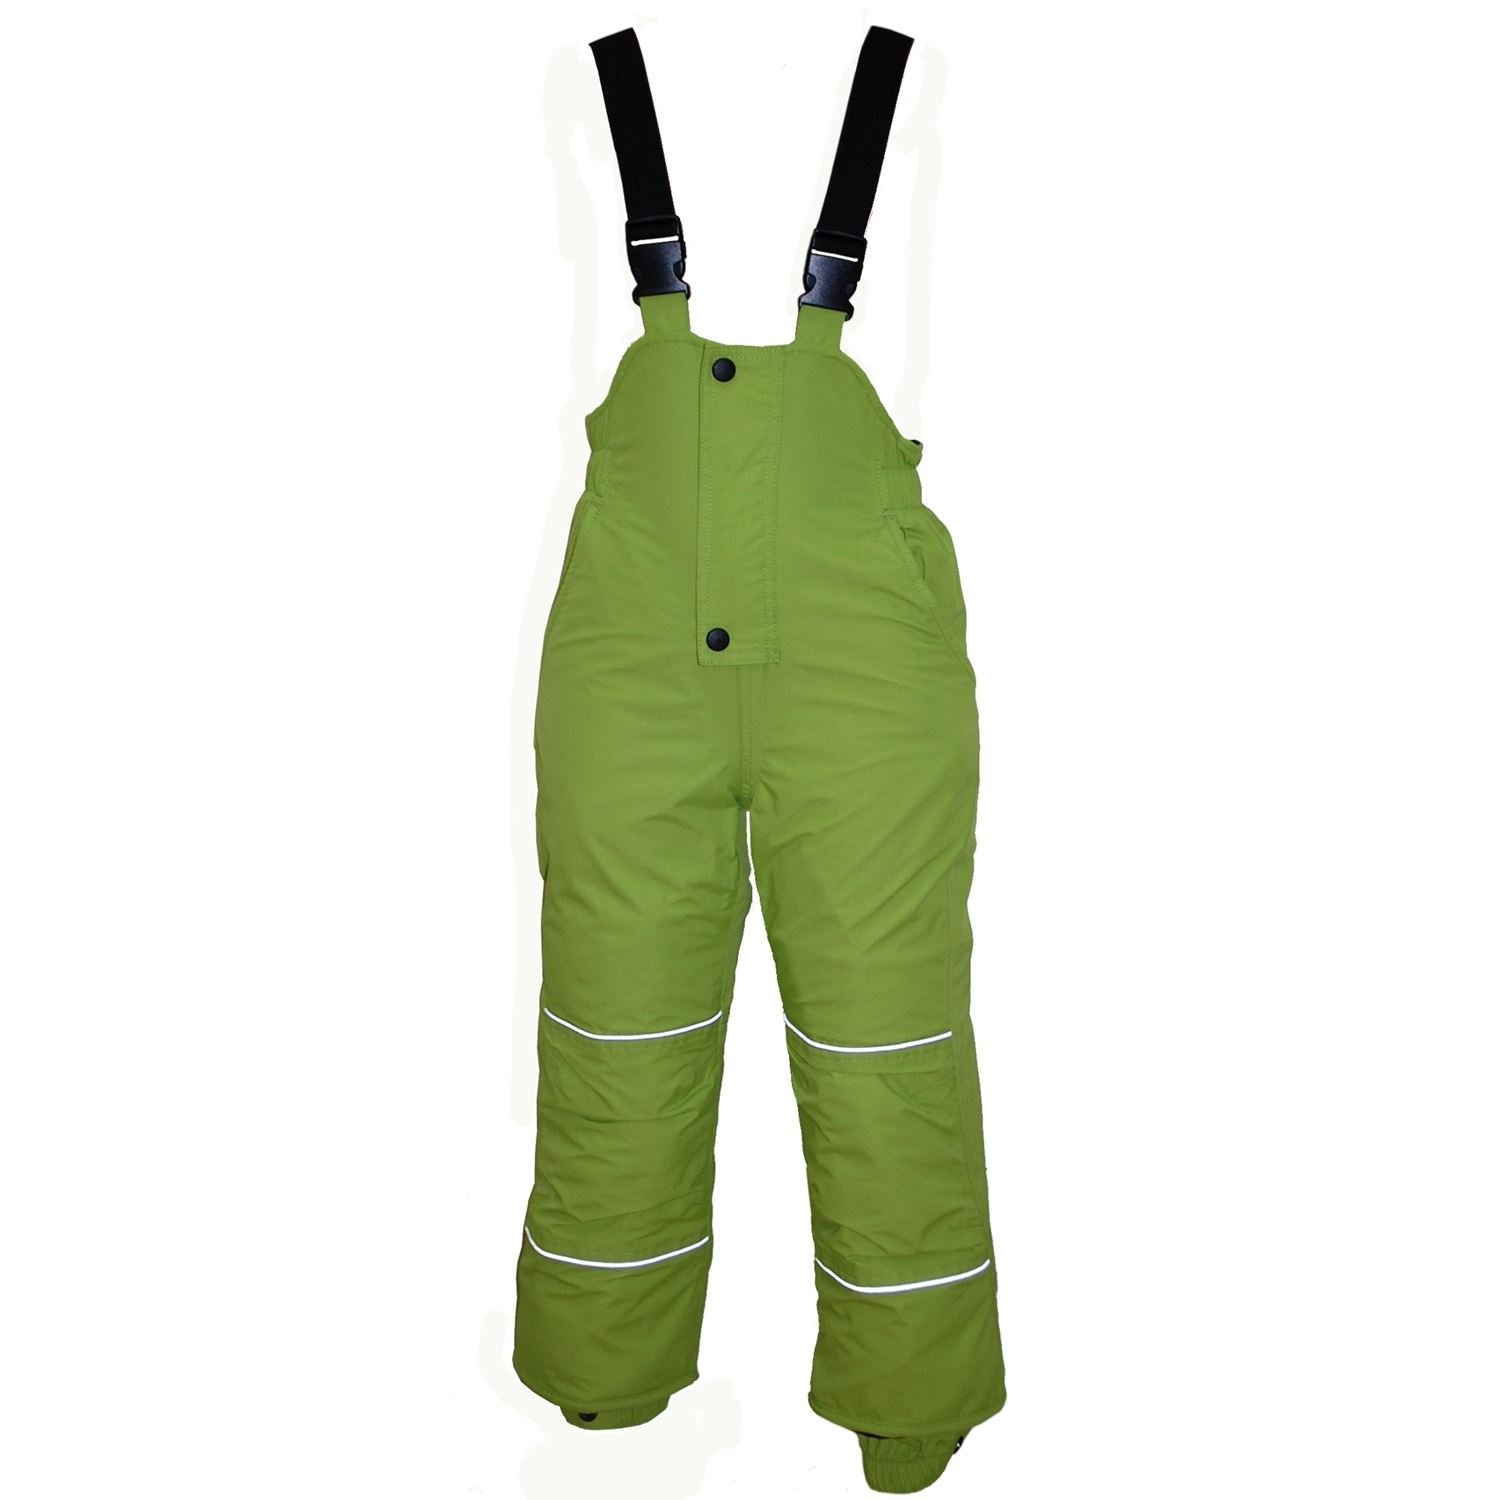 Outburst - Baby boys ski pants snow pants Waterproof 10,000 mm water column, green